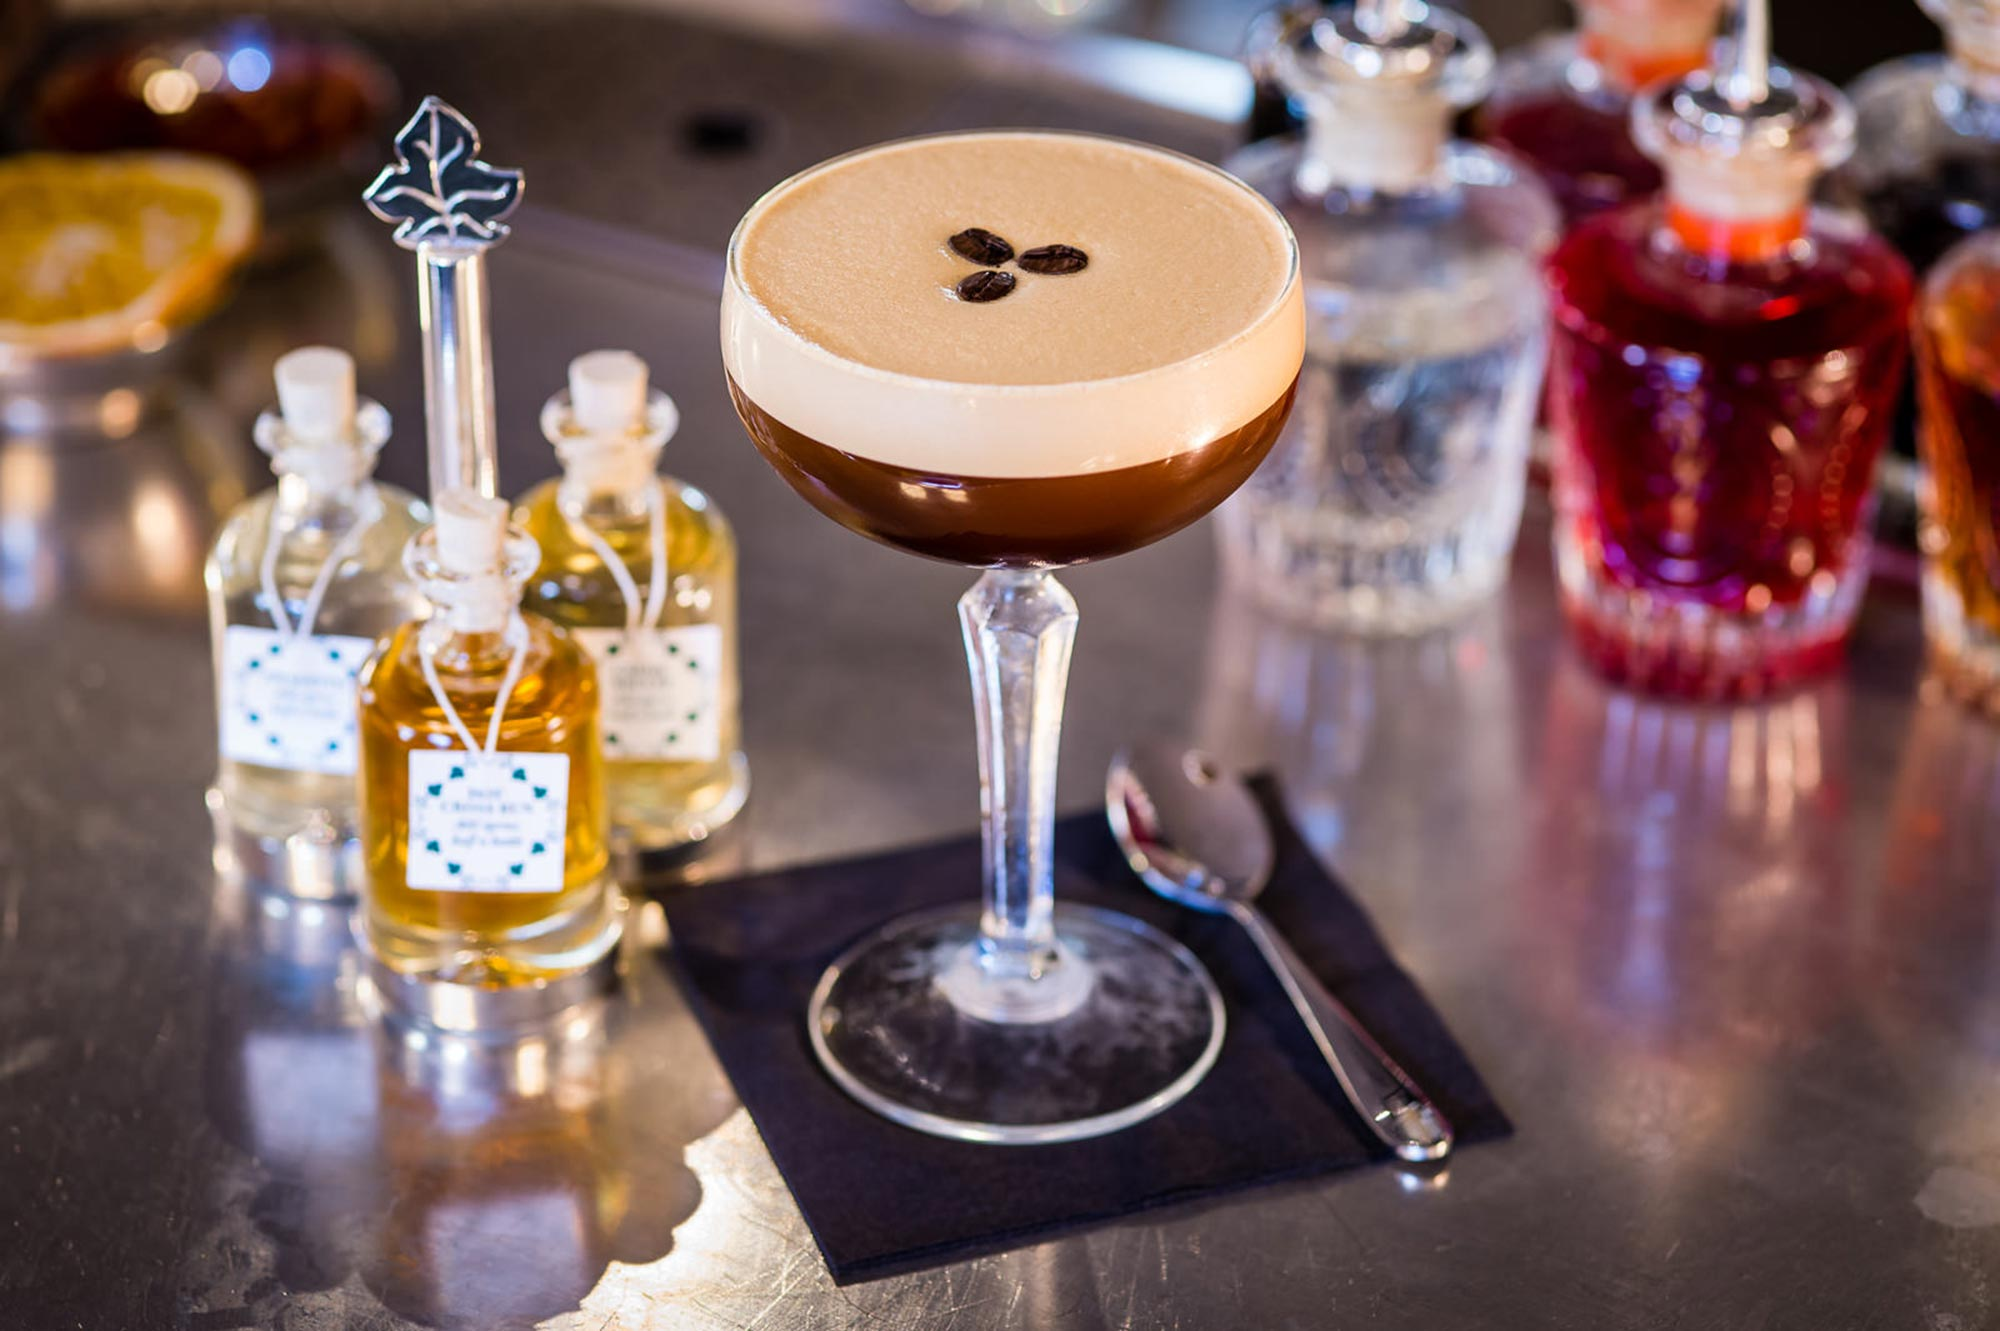 Espresso Martini, Cocktail, The Ivy Royal Tunbridge Wells - The Ivy Royal Tunbridge Wells